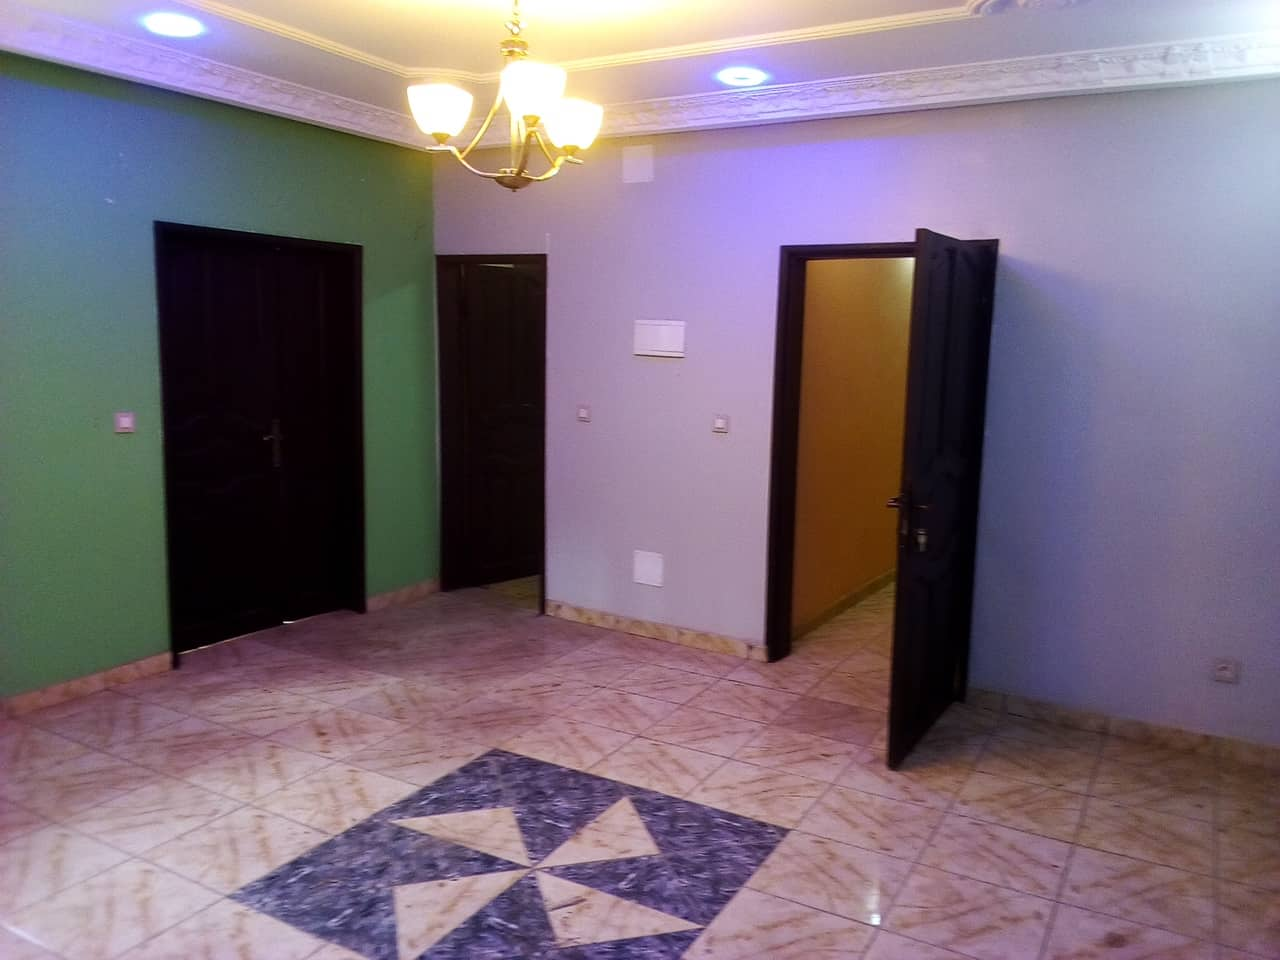 Apartment to rent - Yaoundé, Mfandena, pas loin de titi garage - 1 living room(s), 2 bedroom(s), 1 bathroom(s) - 200 000 FCFA / month